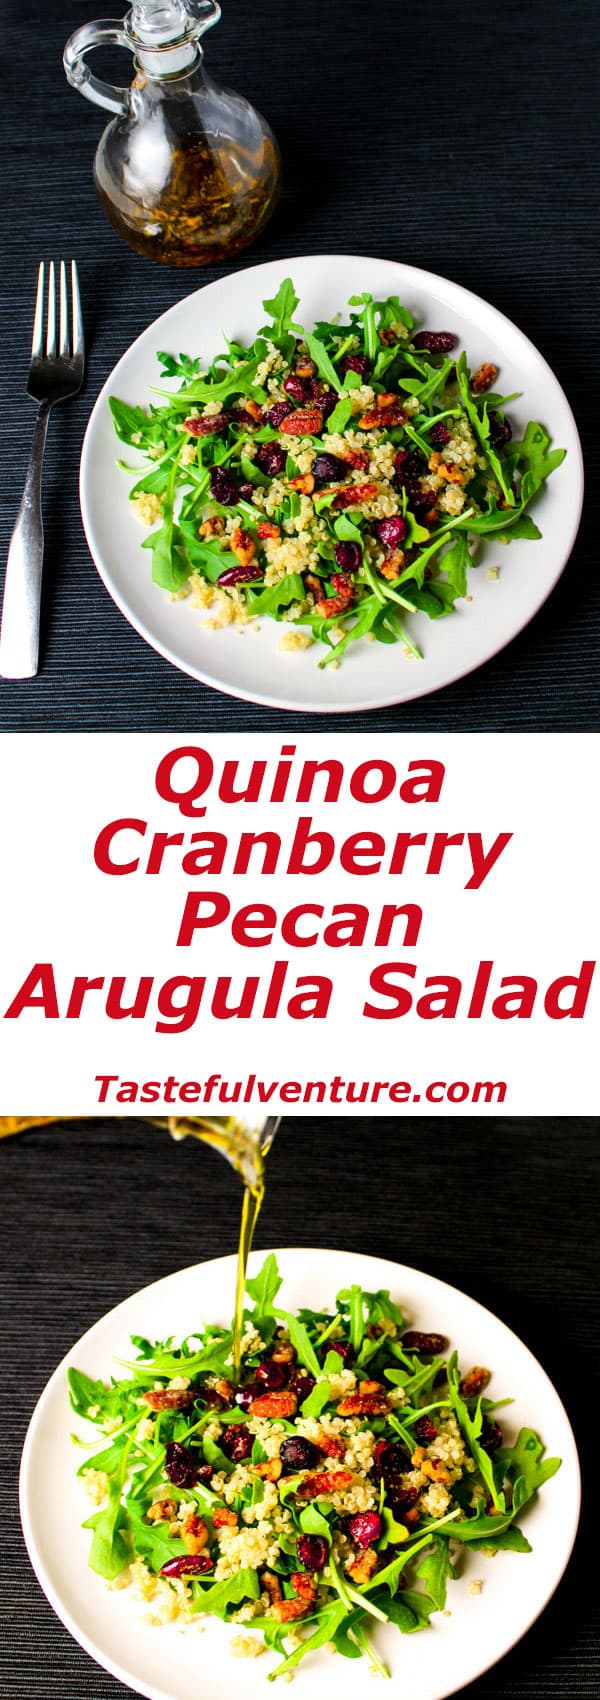 Quinoa Cranberry Pecan Arugula Salad with a super easy Balsamic Vinegar Dressing! | Tastefulventure.com